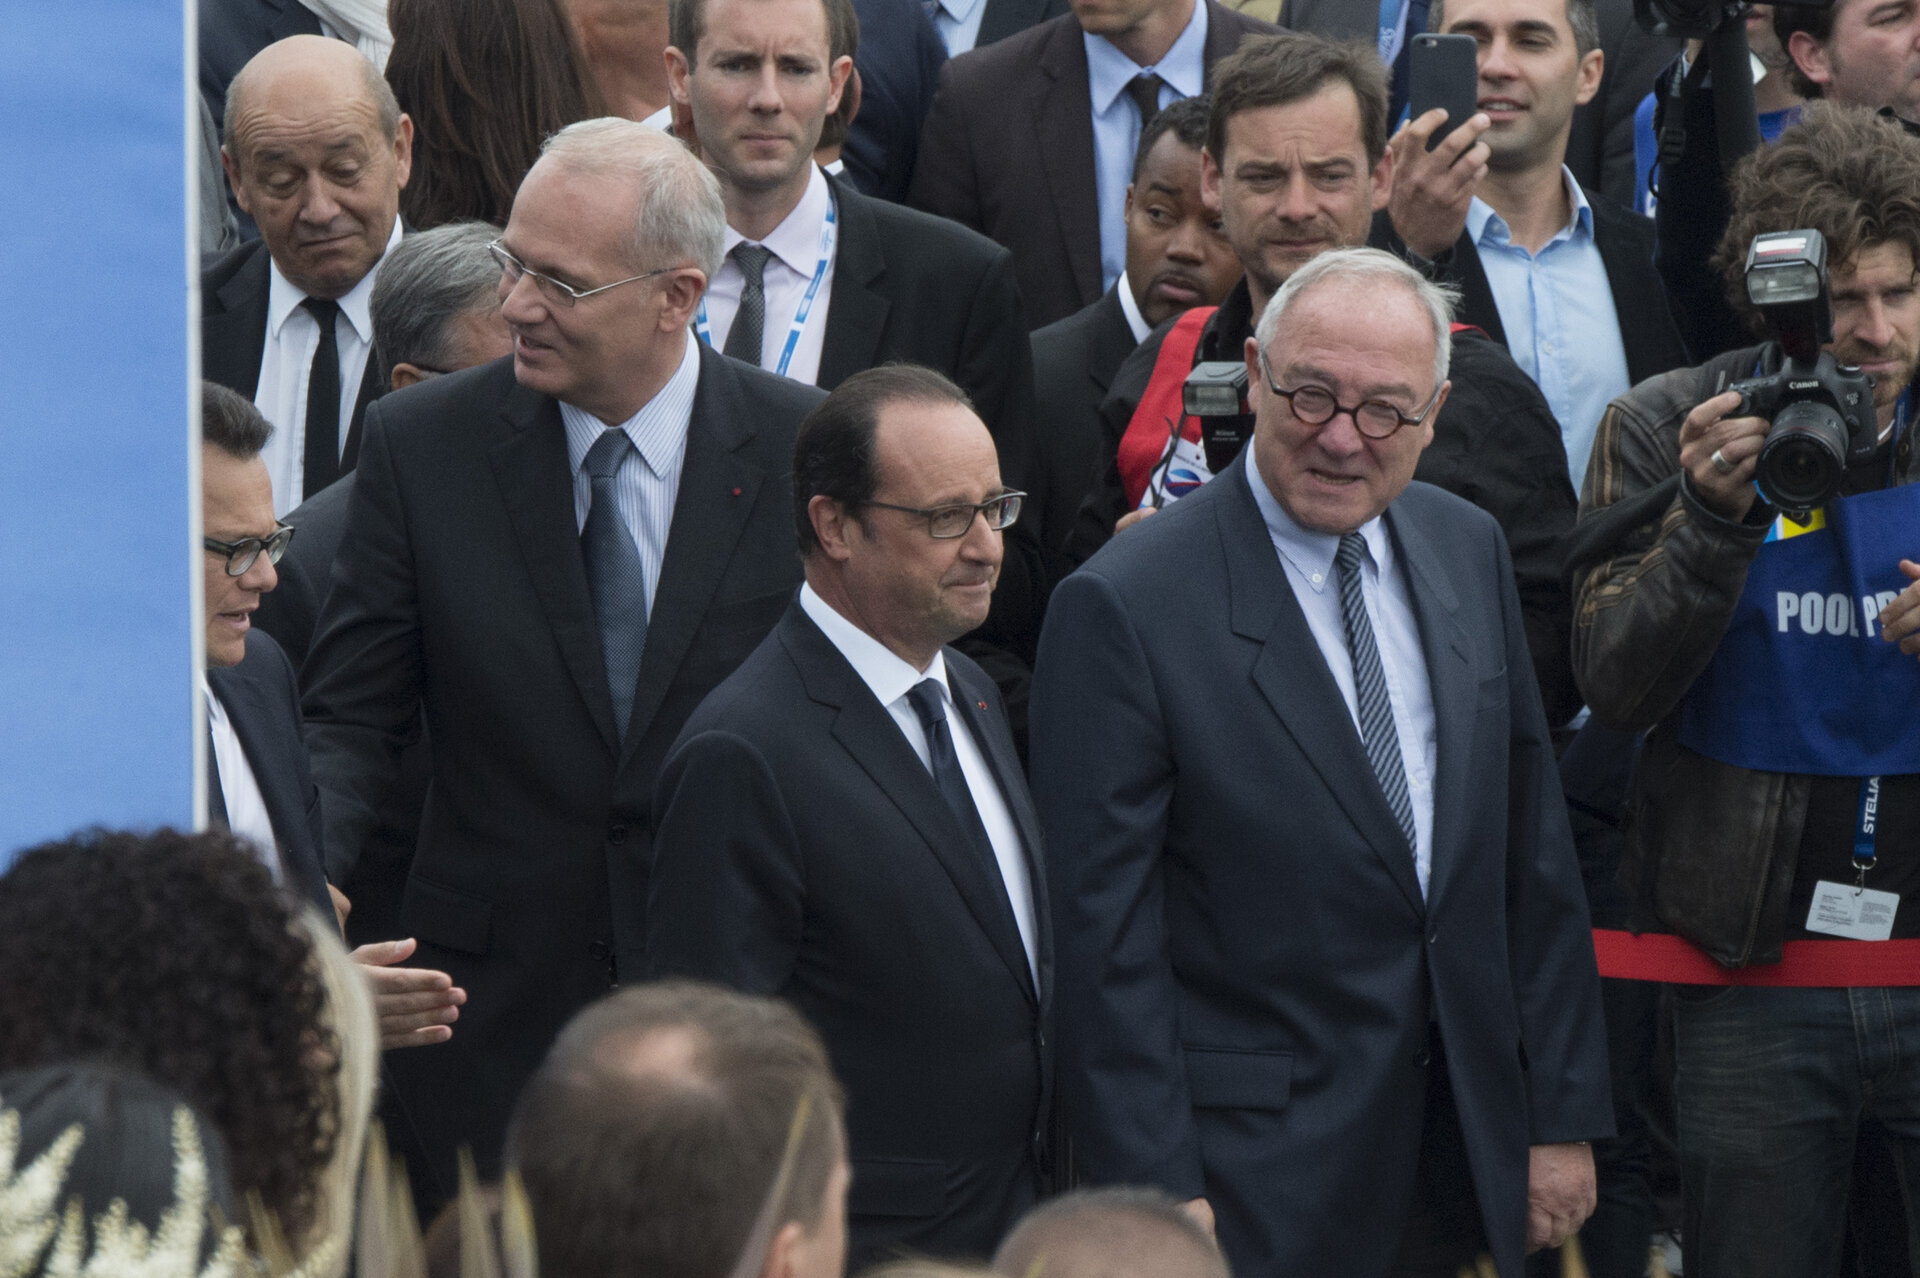 Jean-Jacques Dordain with the President François Hollande